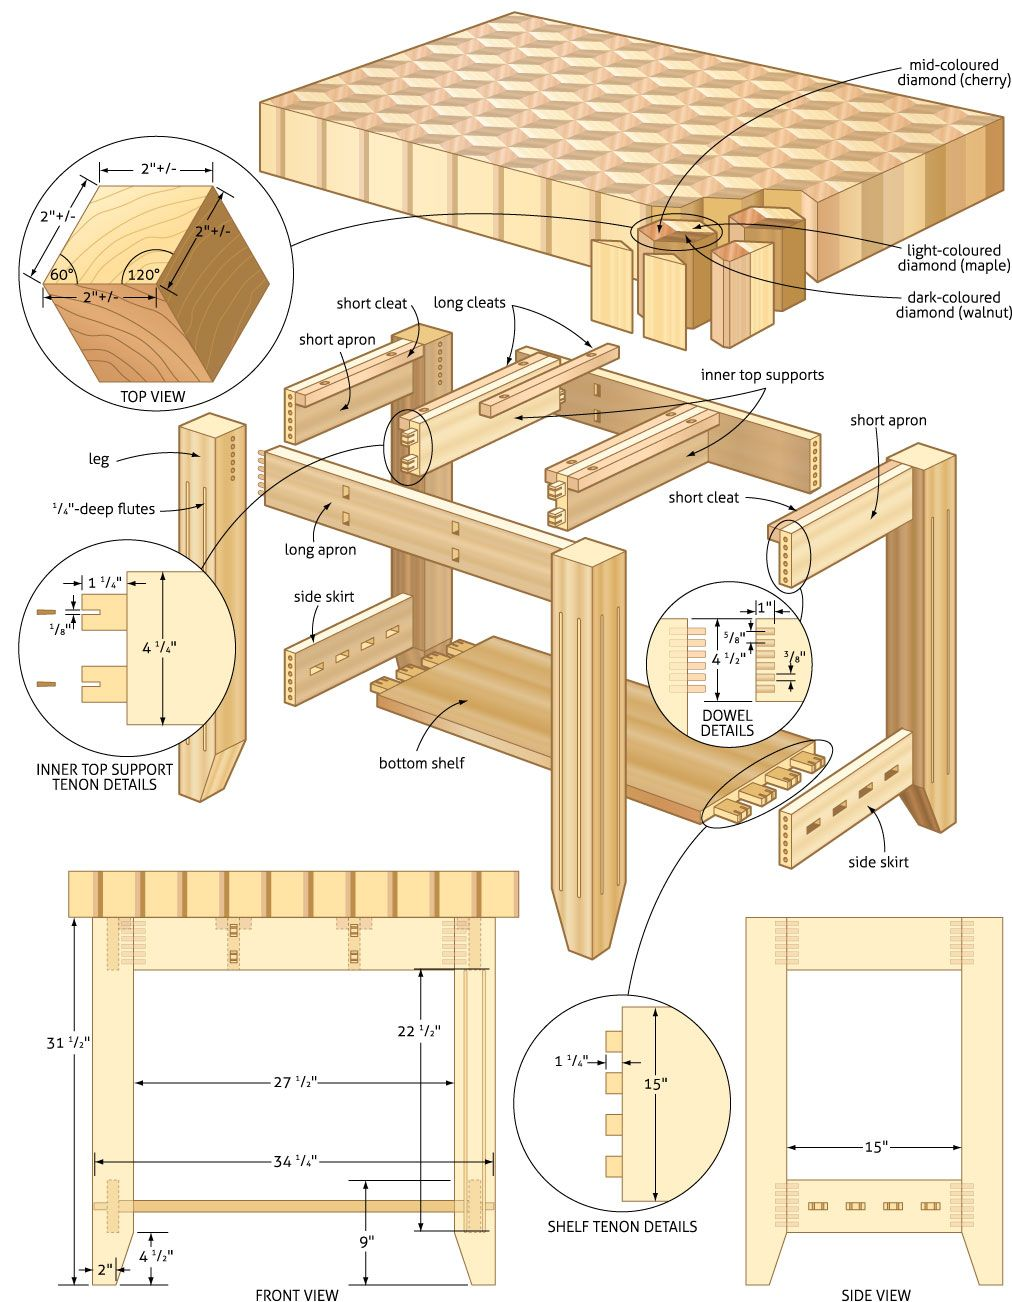 Teds Woodworking Review Teds Wood Working Offers 16 000 Woodworking Plans And Blueprints For Beginners To Woodworking Plans Woodworking Woodworking Plans Free